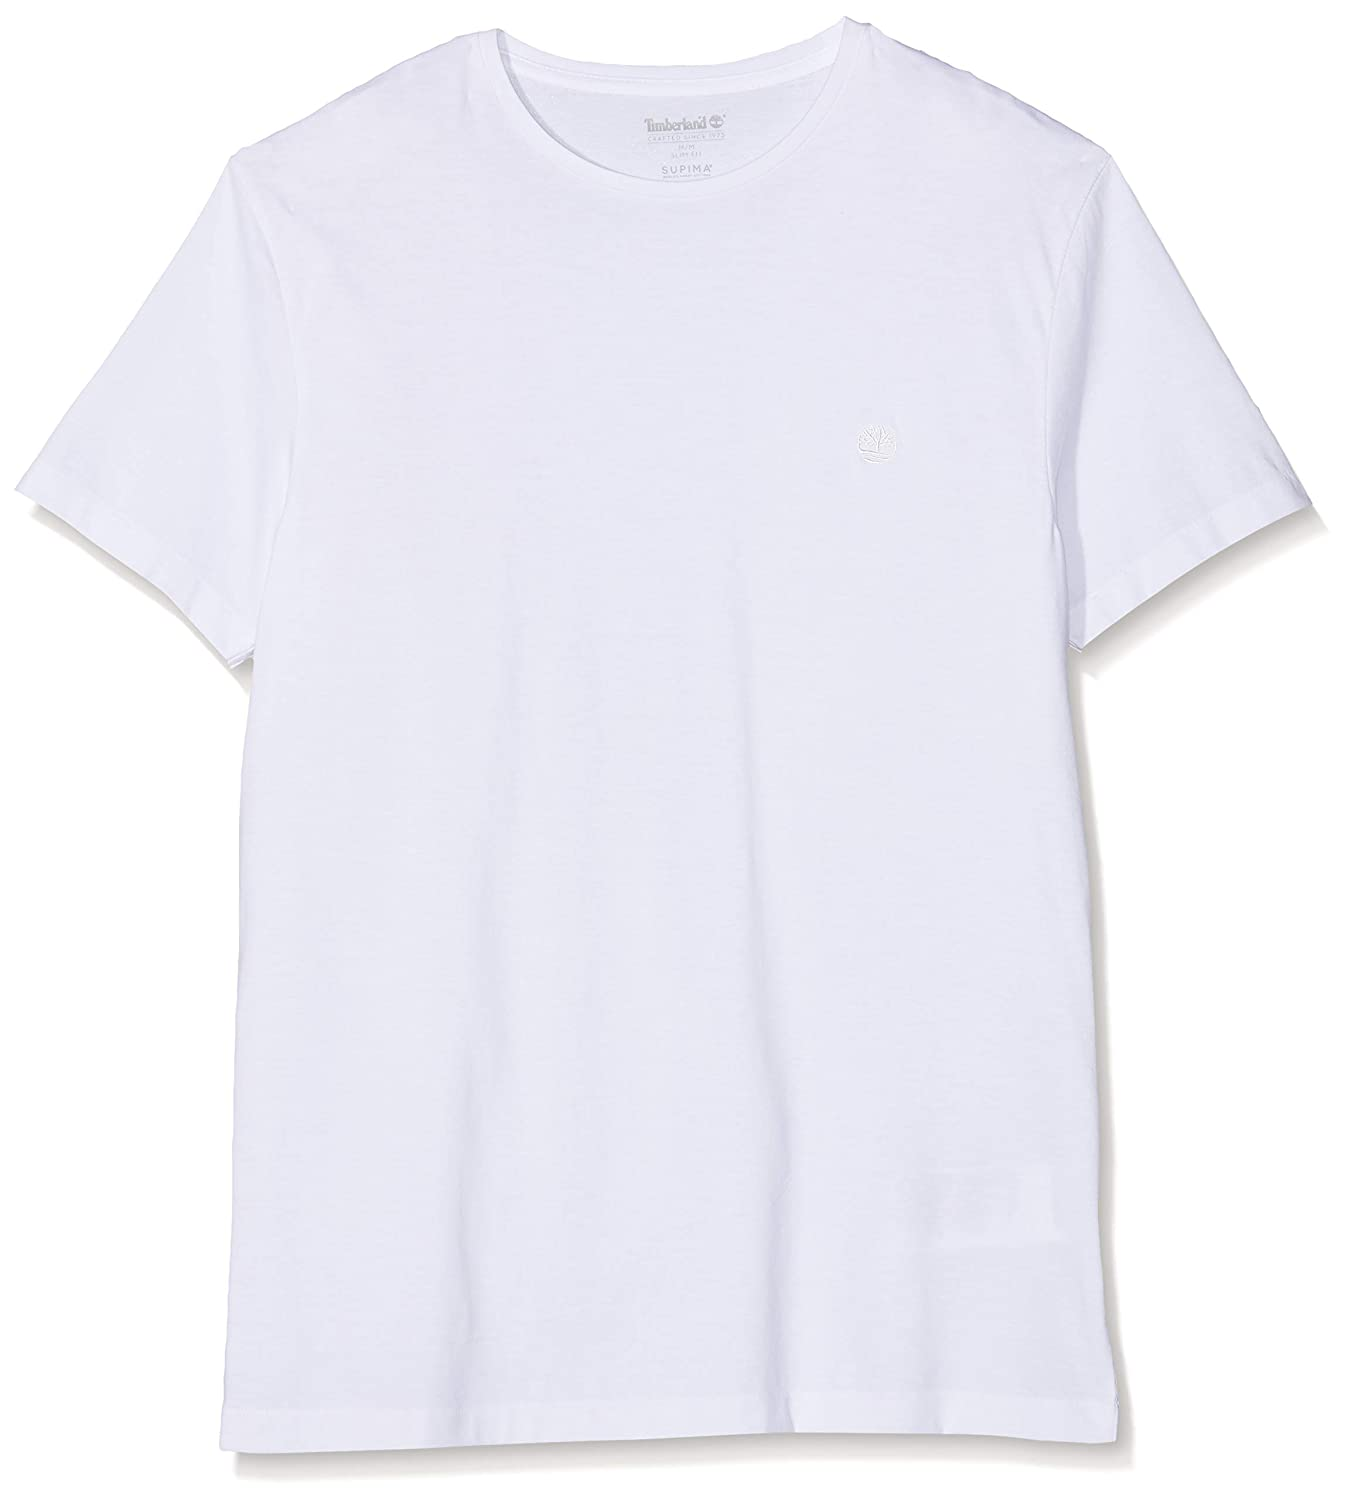 Timberland SS Deer River Elevated Core Tee T Shirt Homme